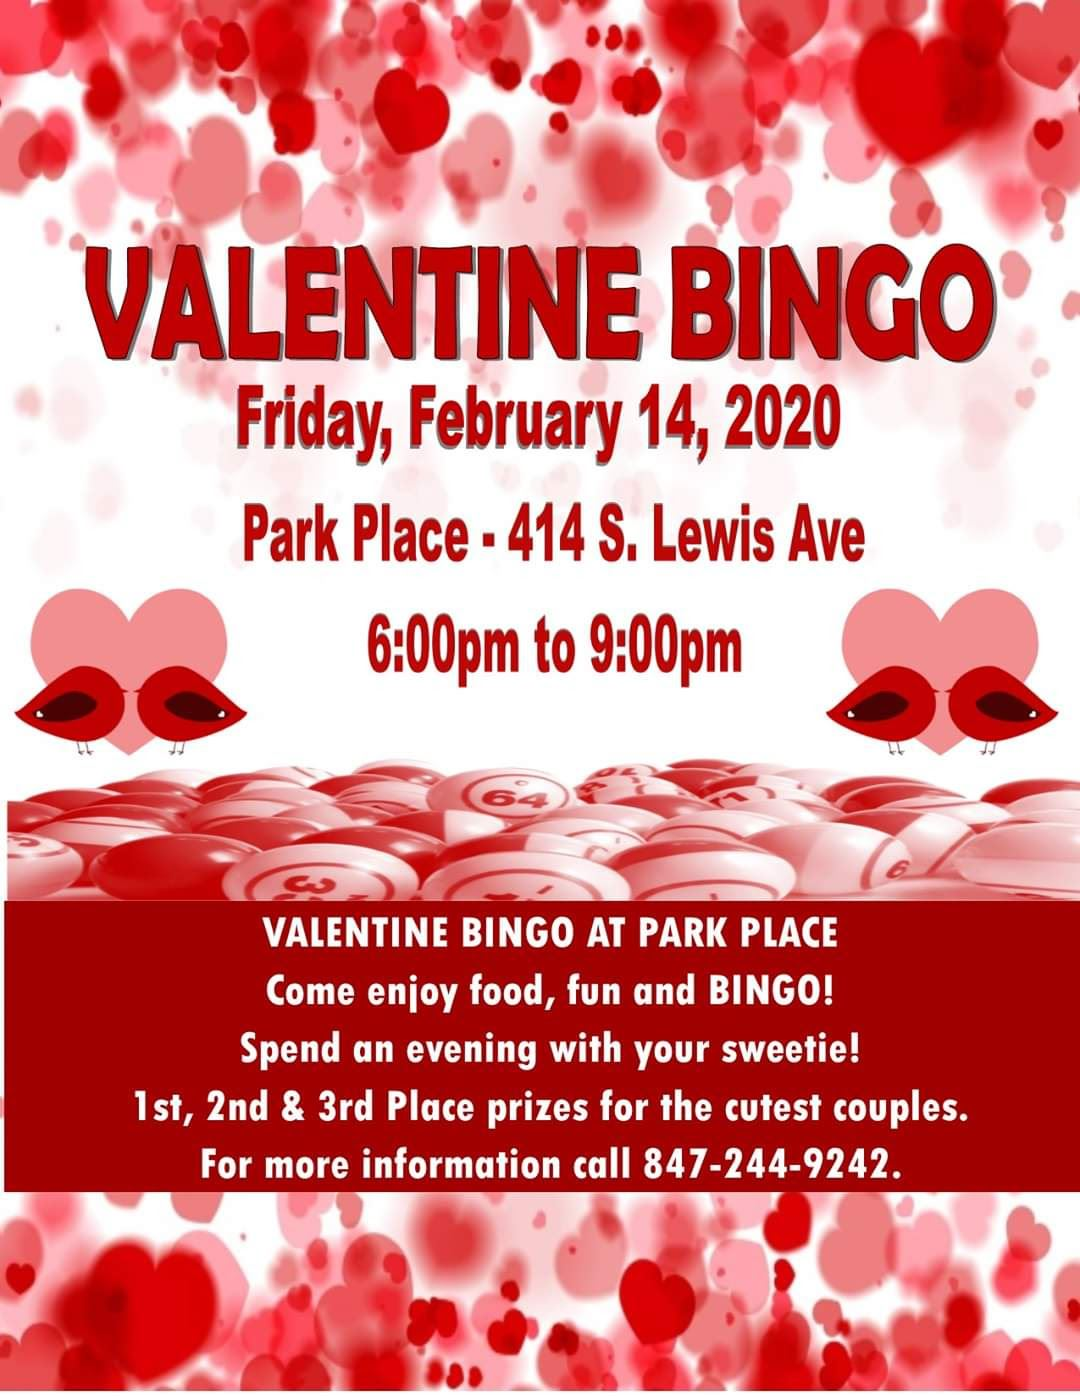 Valetine Bingo at Park Place